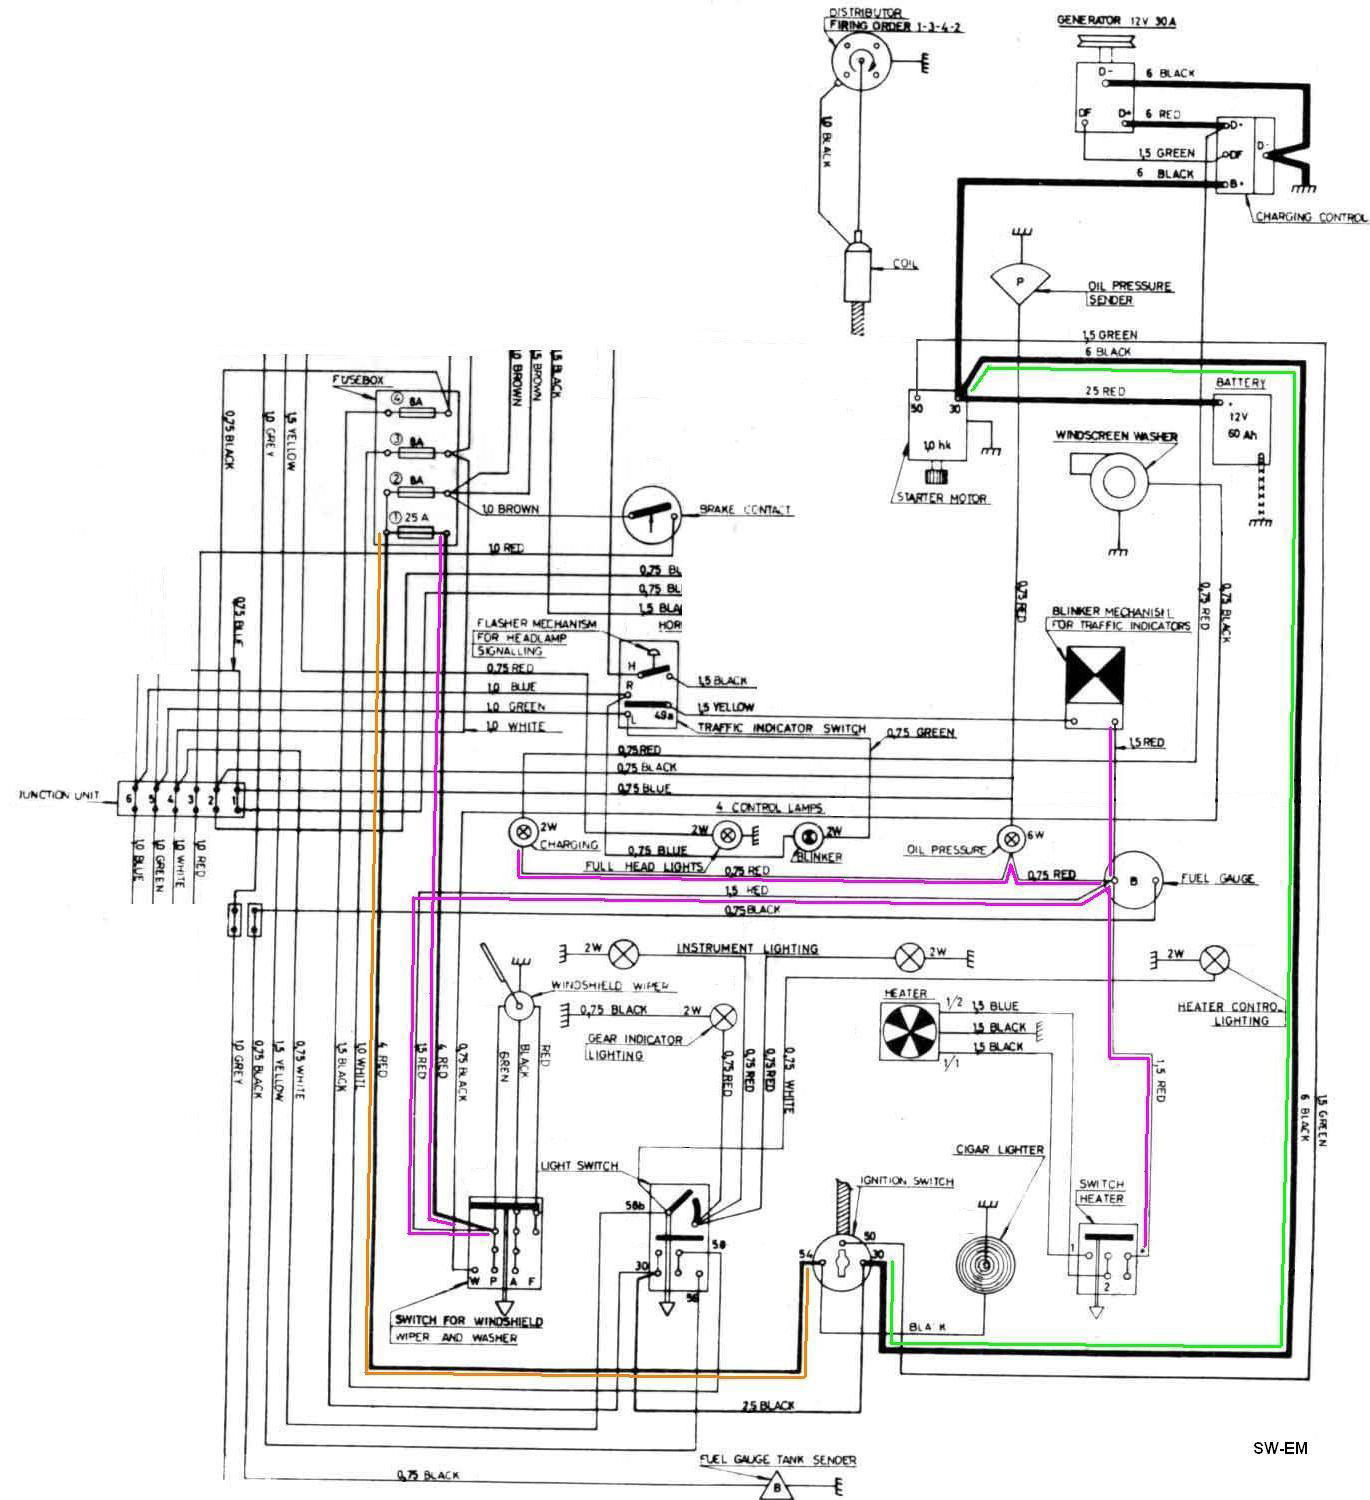 IGN SW wiring diag 122 markup volvo 240 alternator wiring diagram wiring diagrams readingrat net Volvo V70 Engine Diagram at soozxer.org